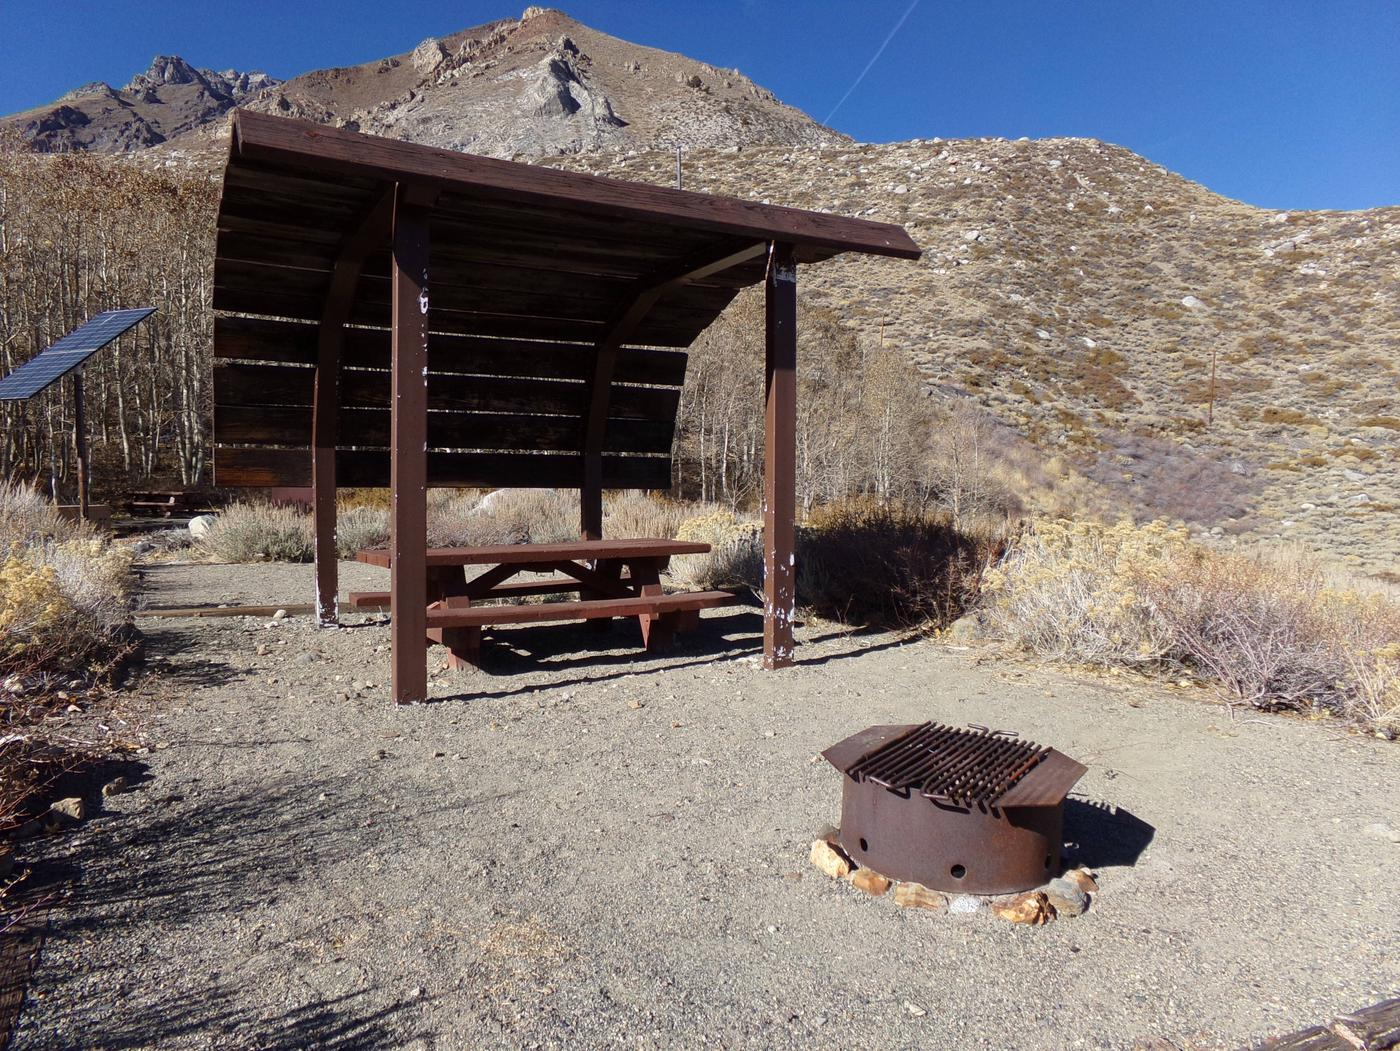 McGee Creek Campground site #21 featuring shaded picnic area with fire pit and camping space.